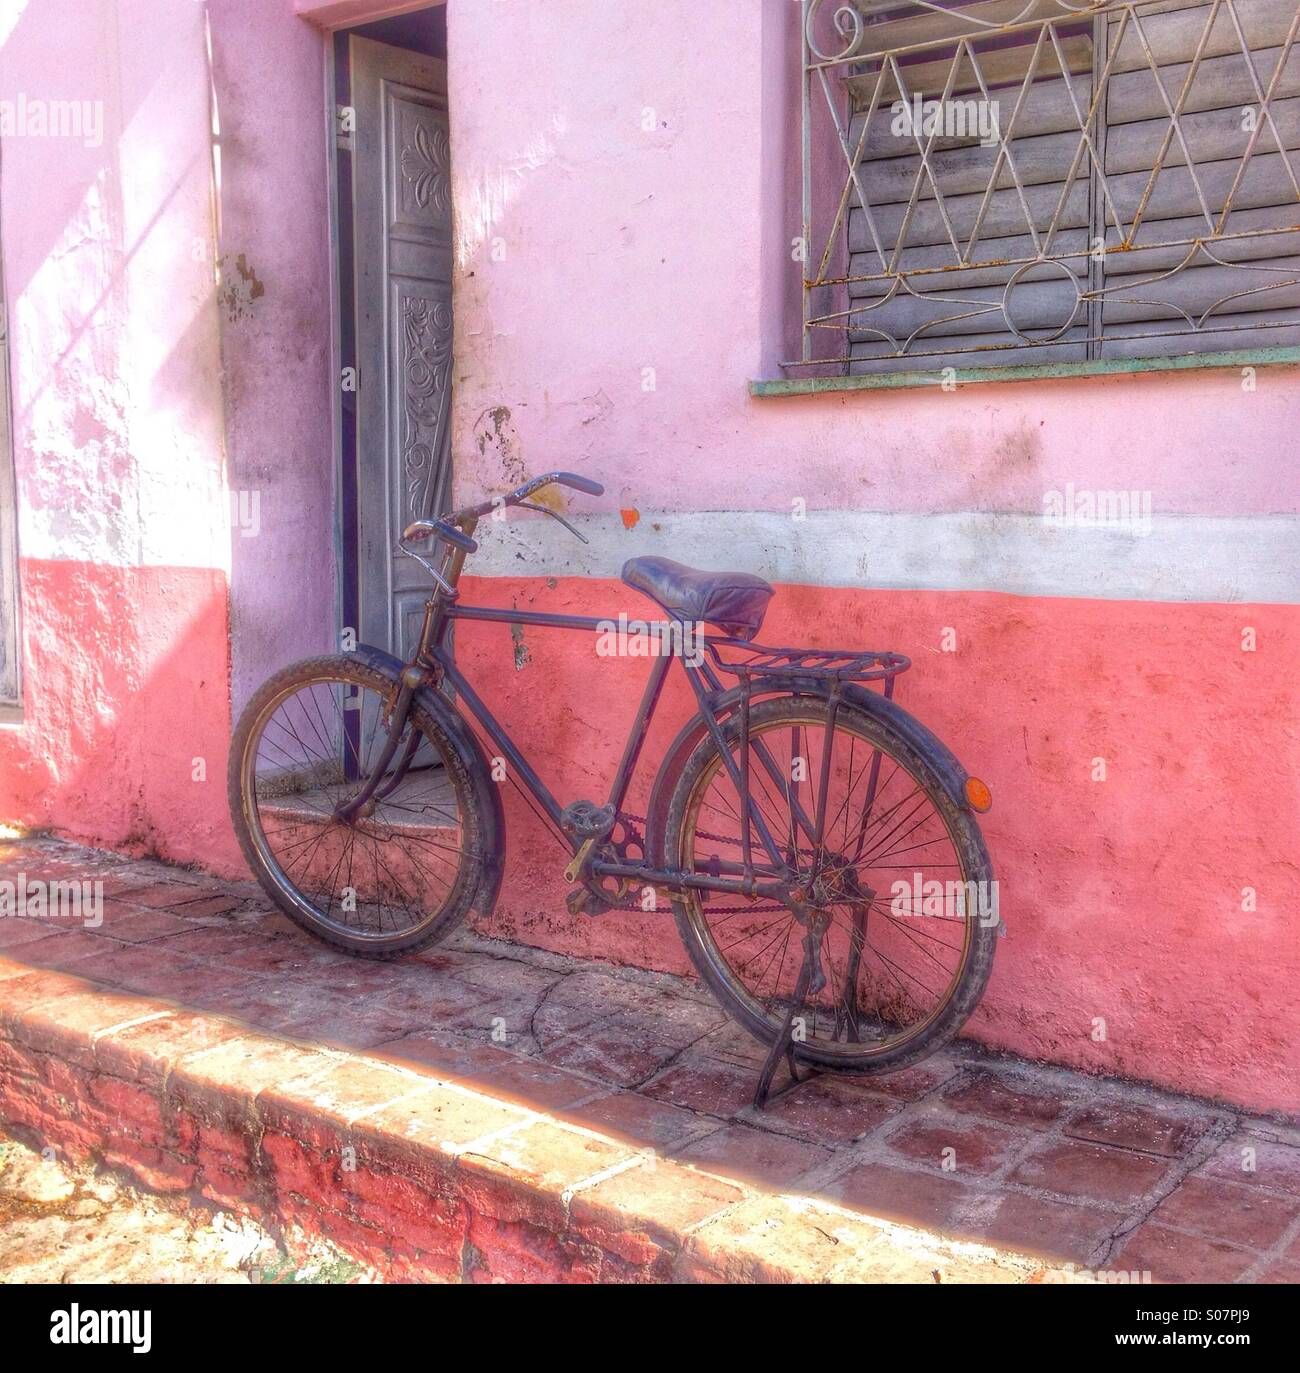 Les bicyclettes contre un mur peint en rose, de Cuba. Photo Stock